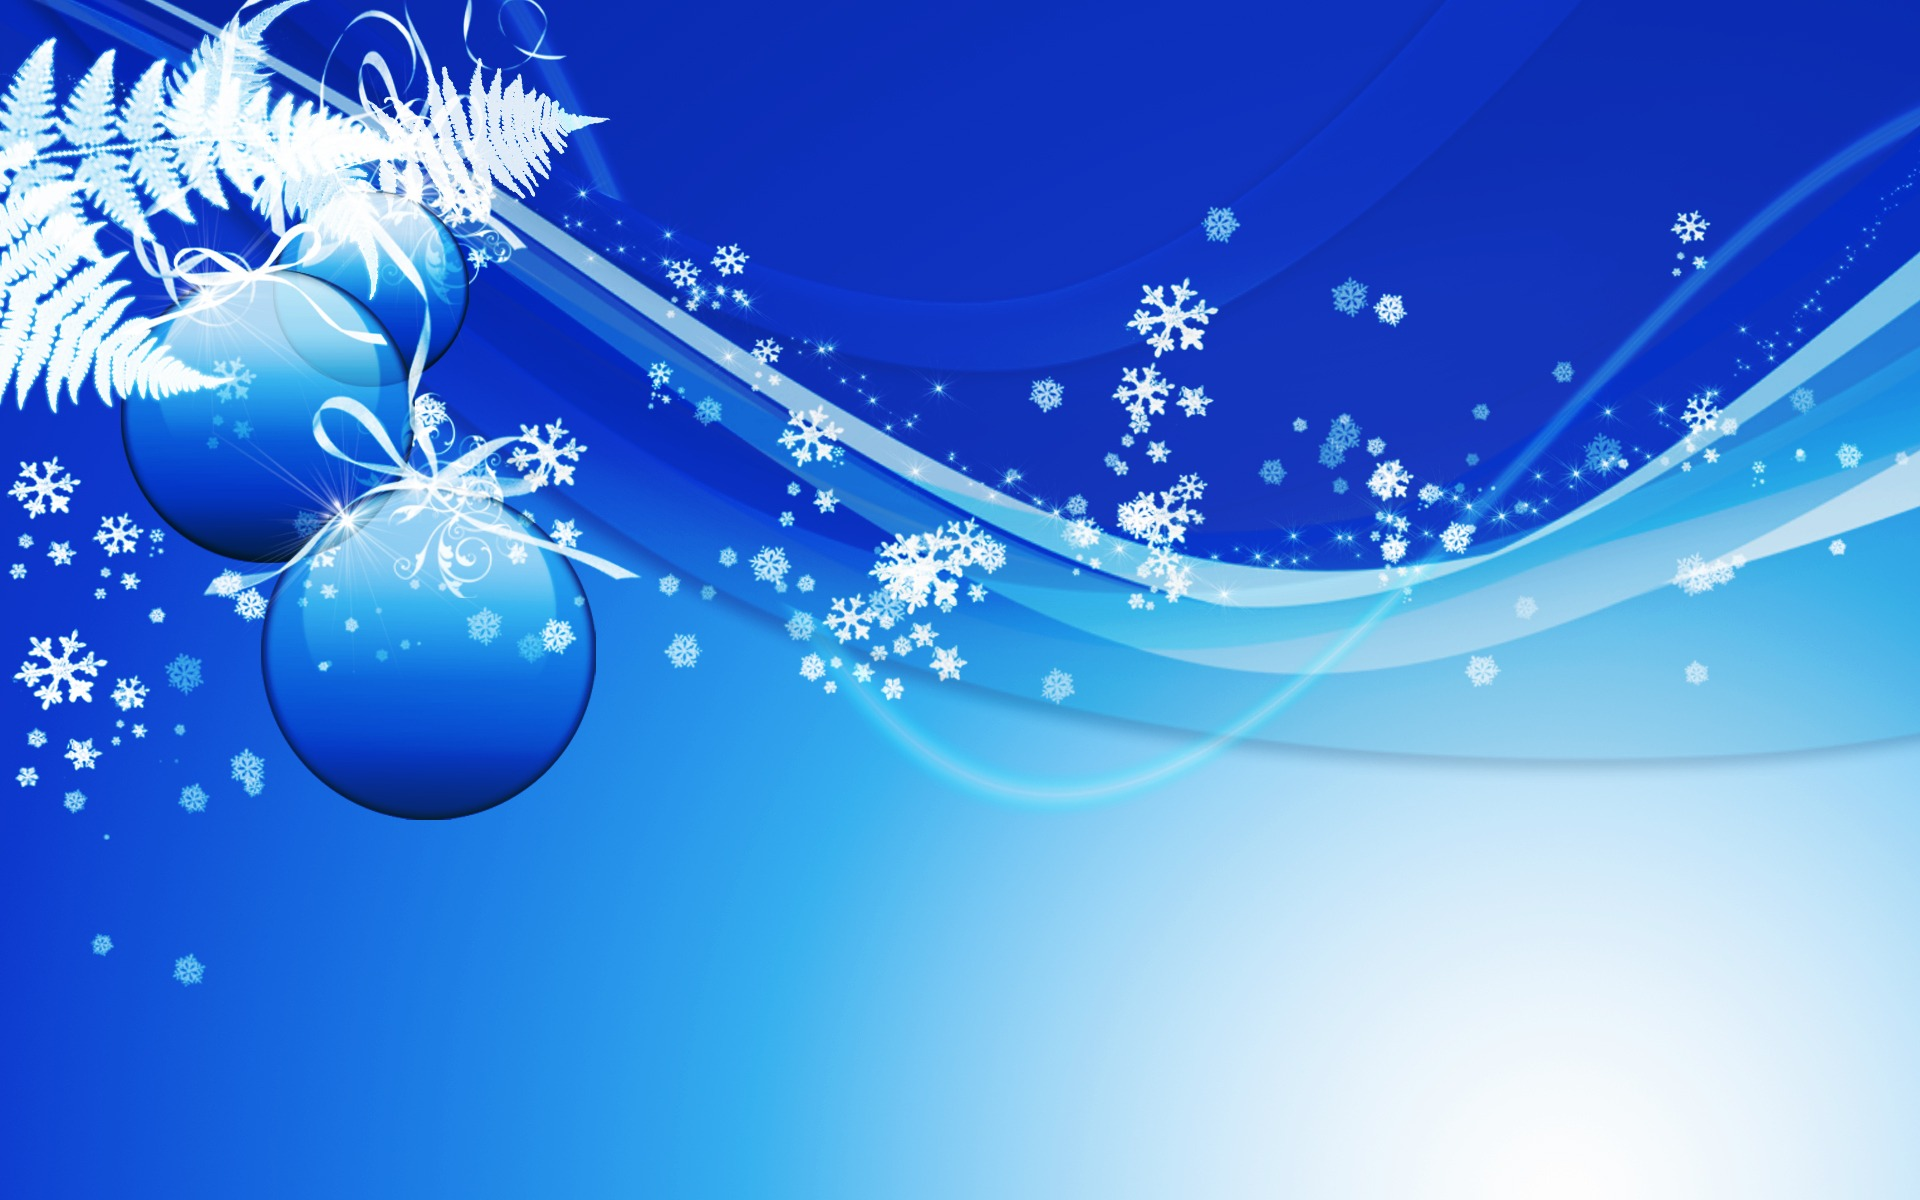 Christmas Wallpaper Background.Christmas Wallpapers Backgrounds 5 Cru Cafe